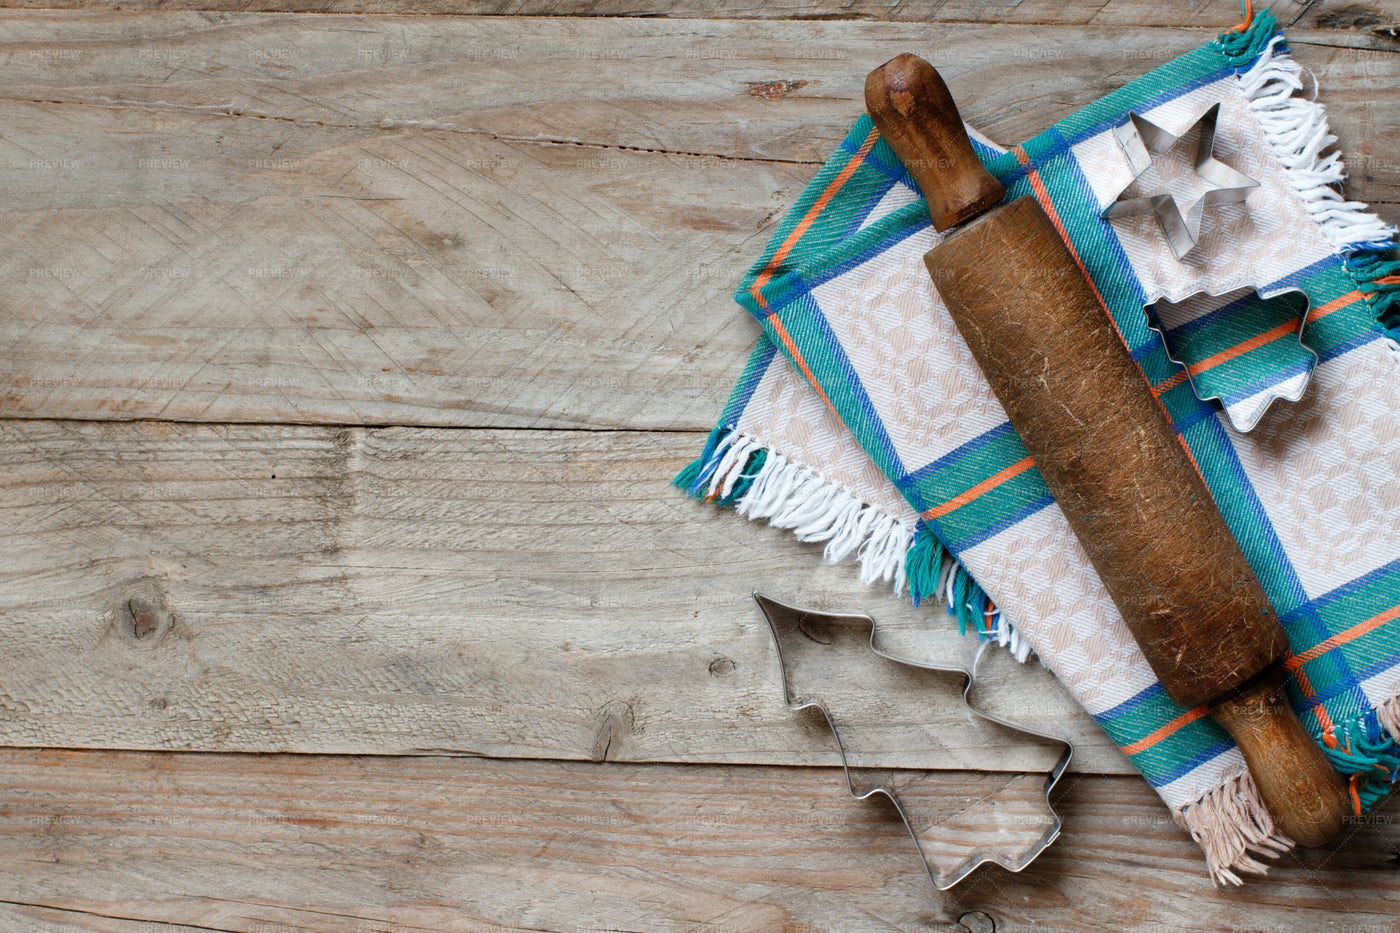 Cookie Cutters And Rolling Pin: Stock Photos